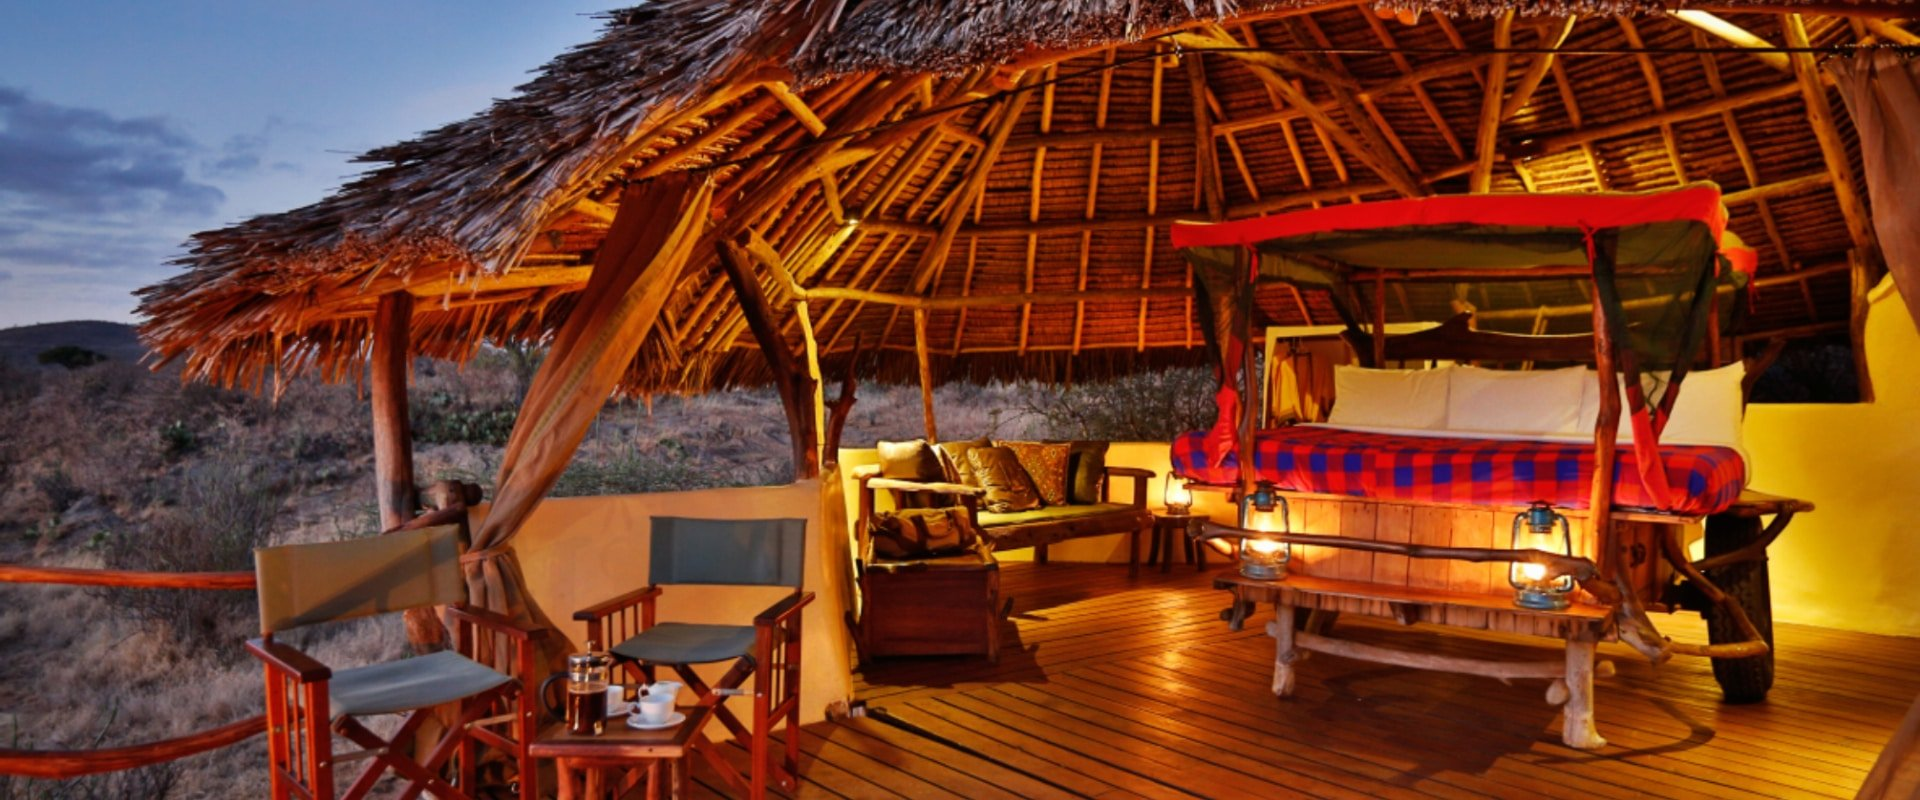 Sleep under the endless African starry sky